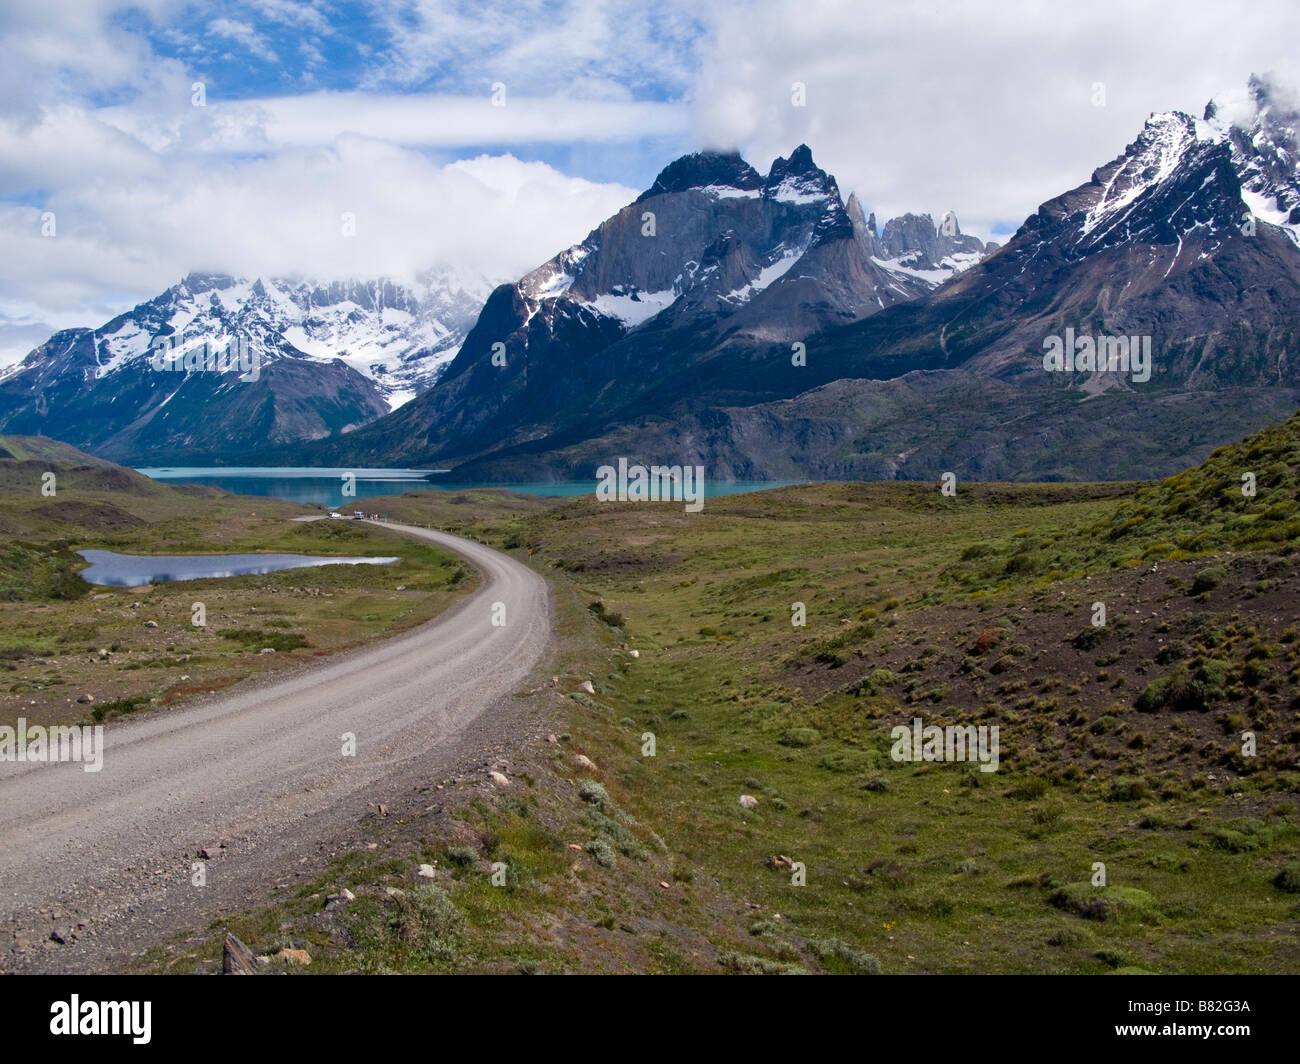 Open winding road Torres del Paine National Park, Patagonia, Chile,South America - Stock Image